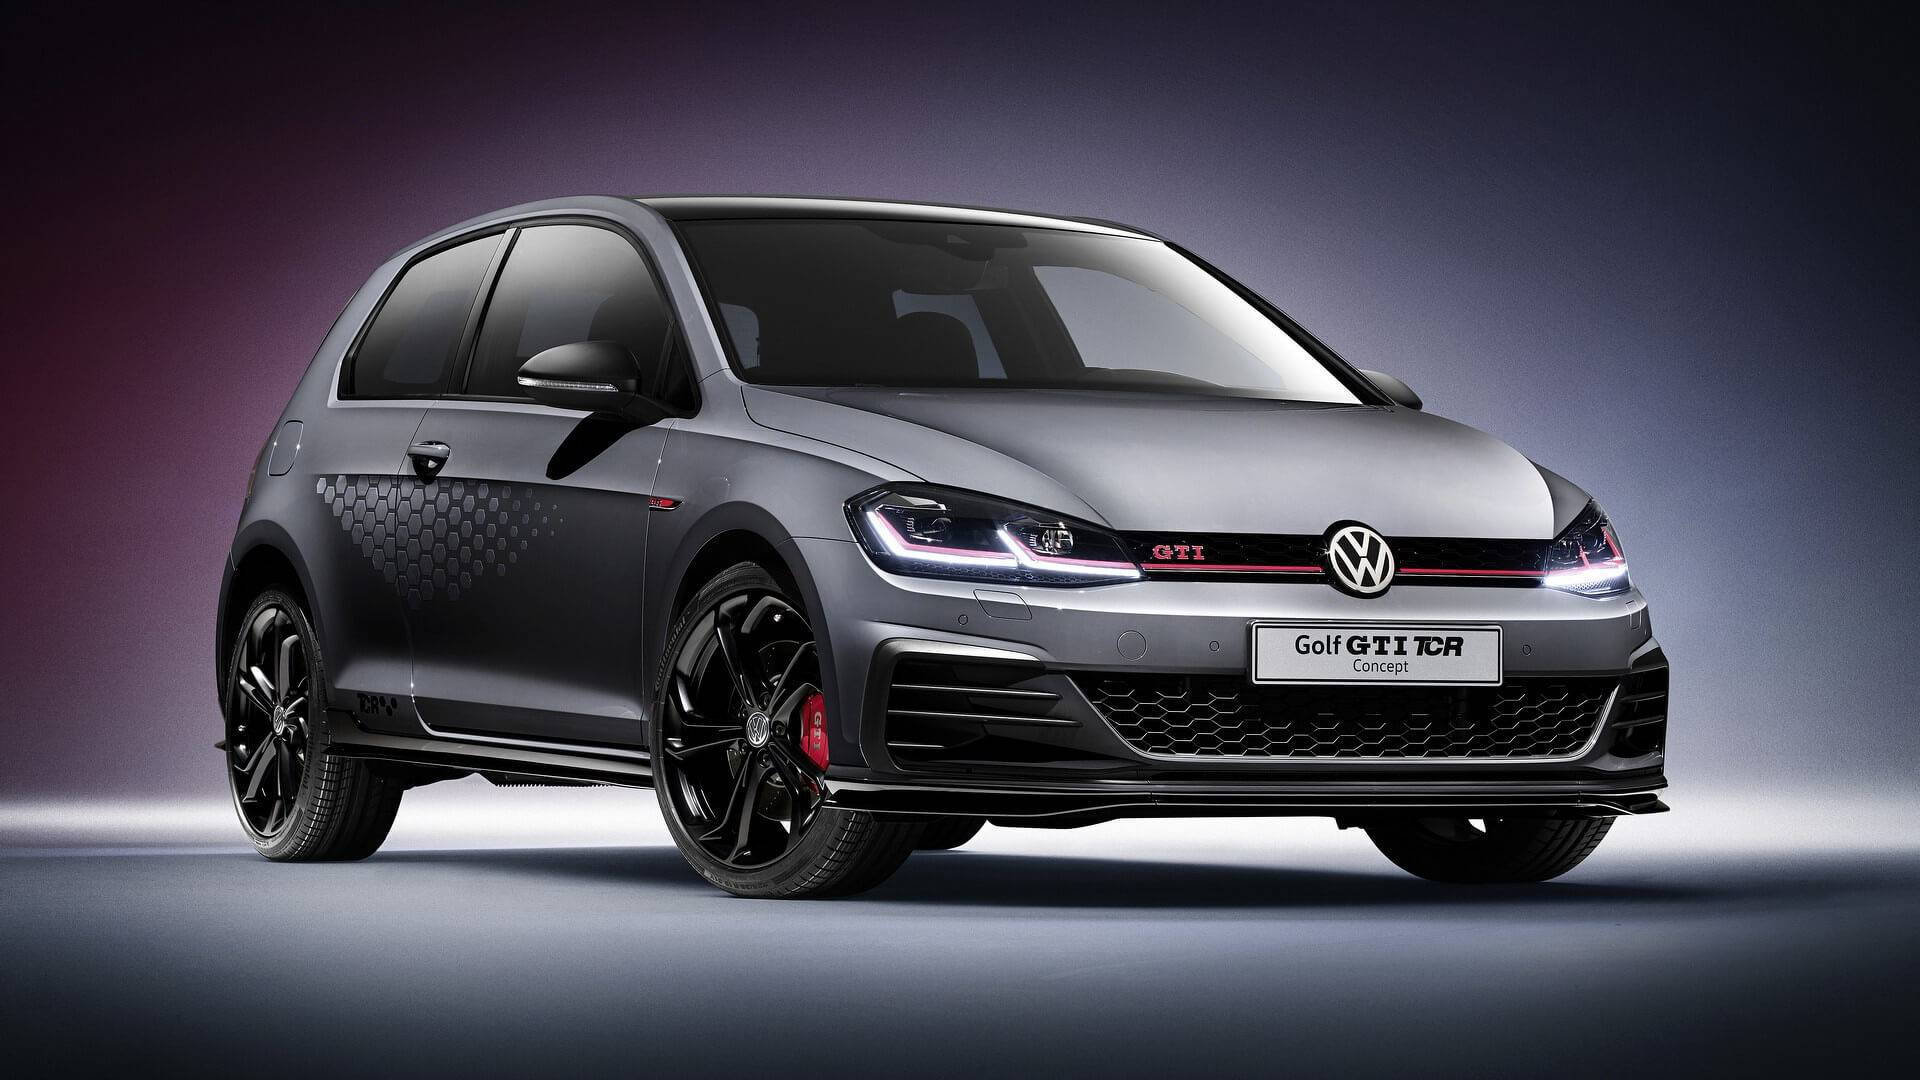 290 Horsepower Vw Golf Gti Tcr Road Car Previewed By Concept